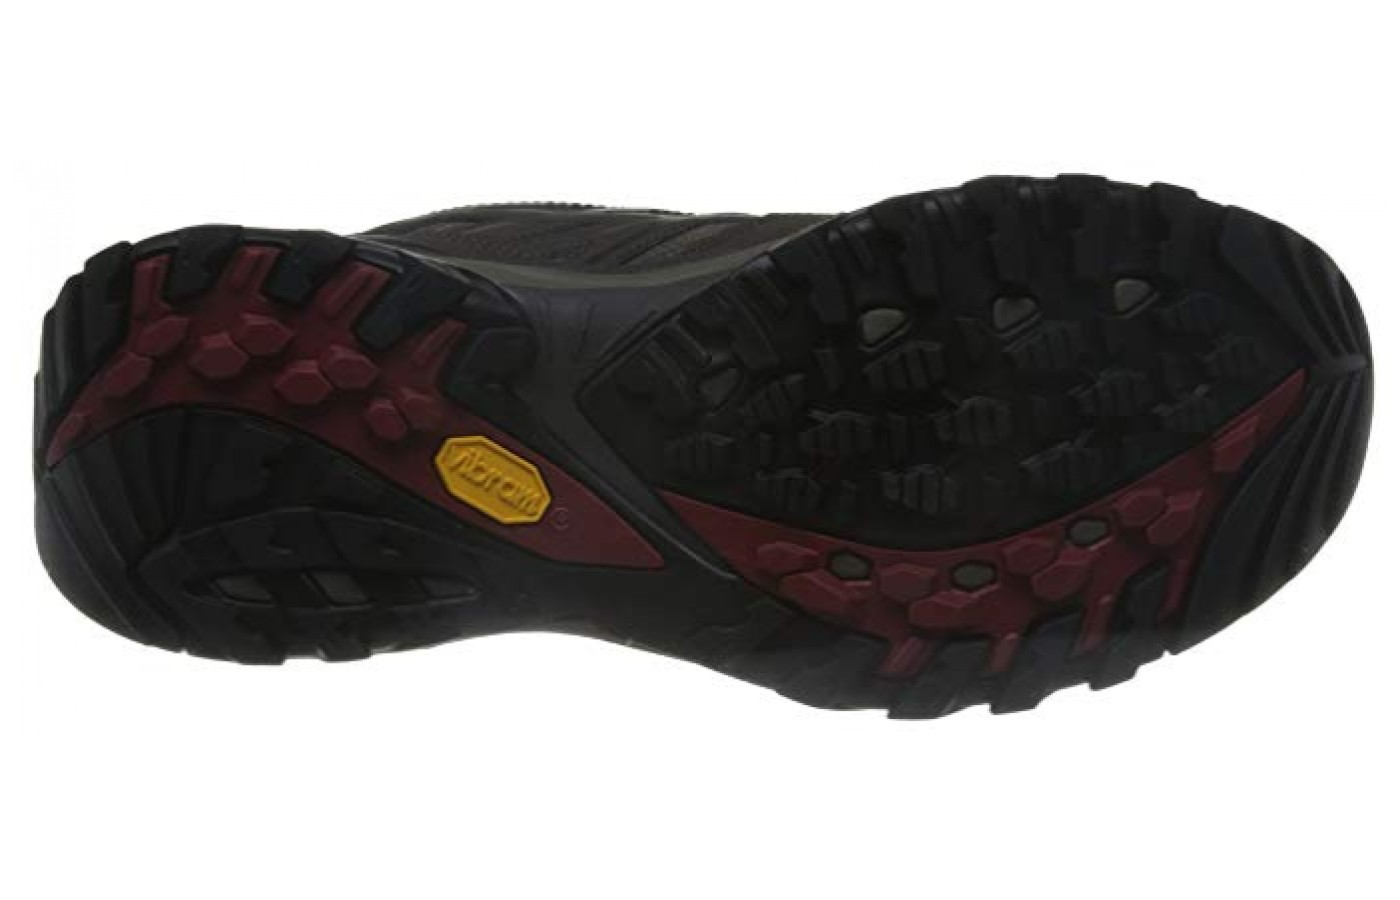 The tread allows for both water and mud to move around as needed under your foot without you losing traction.